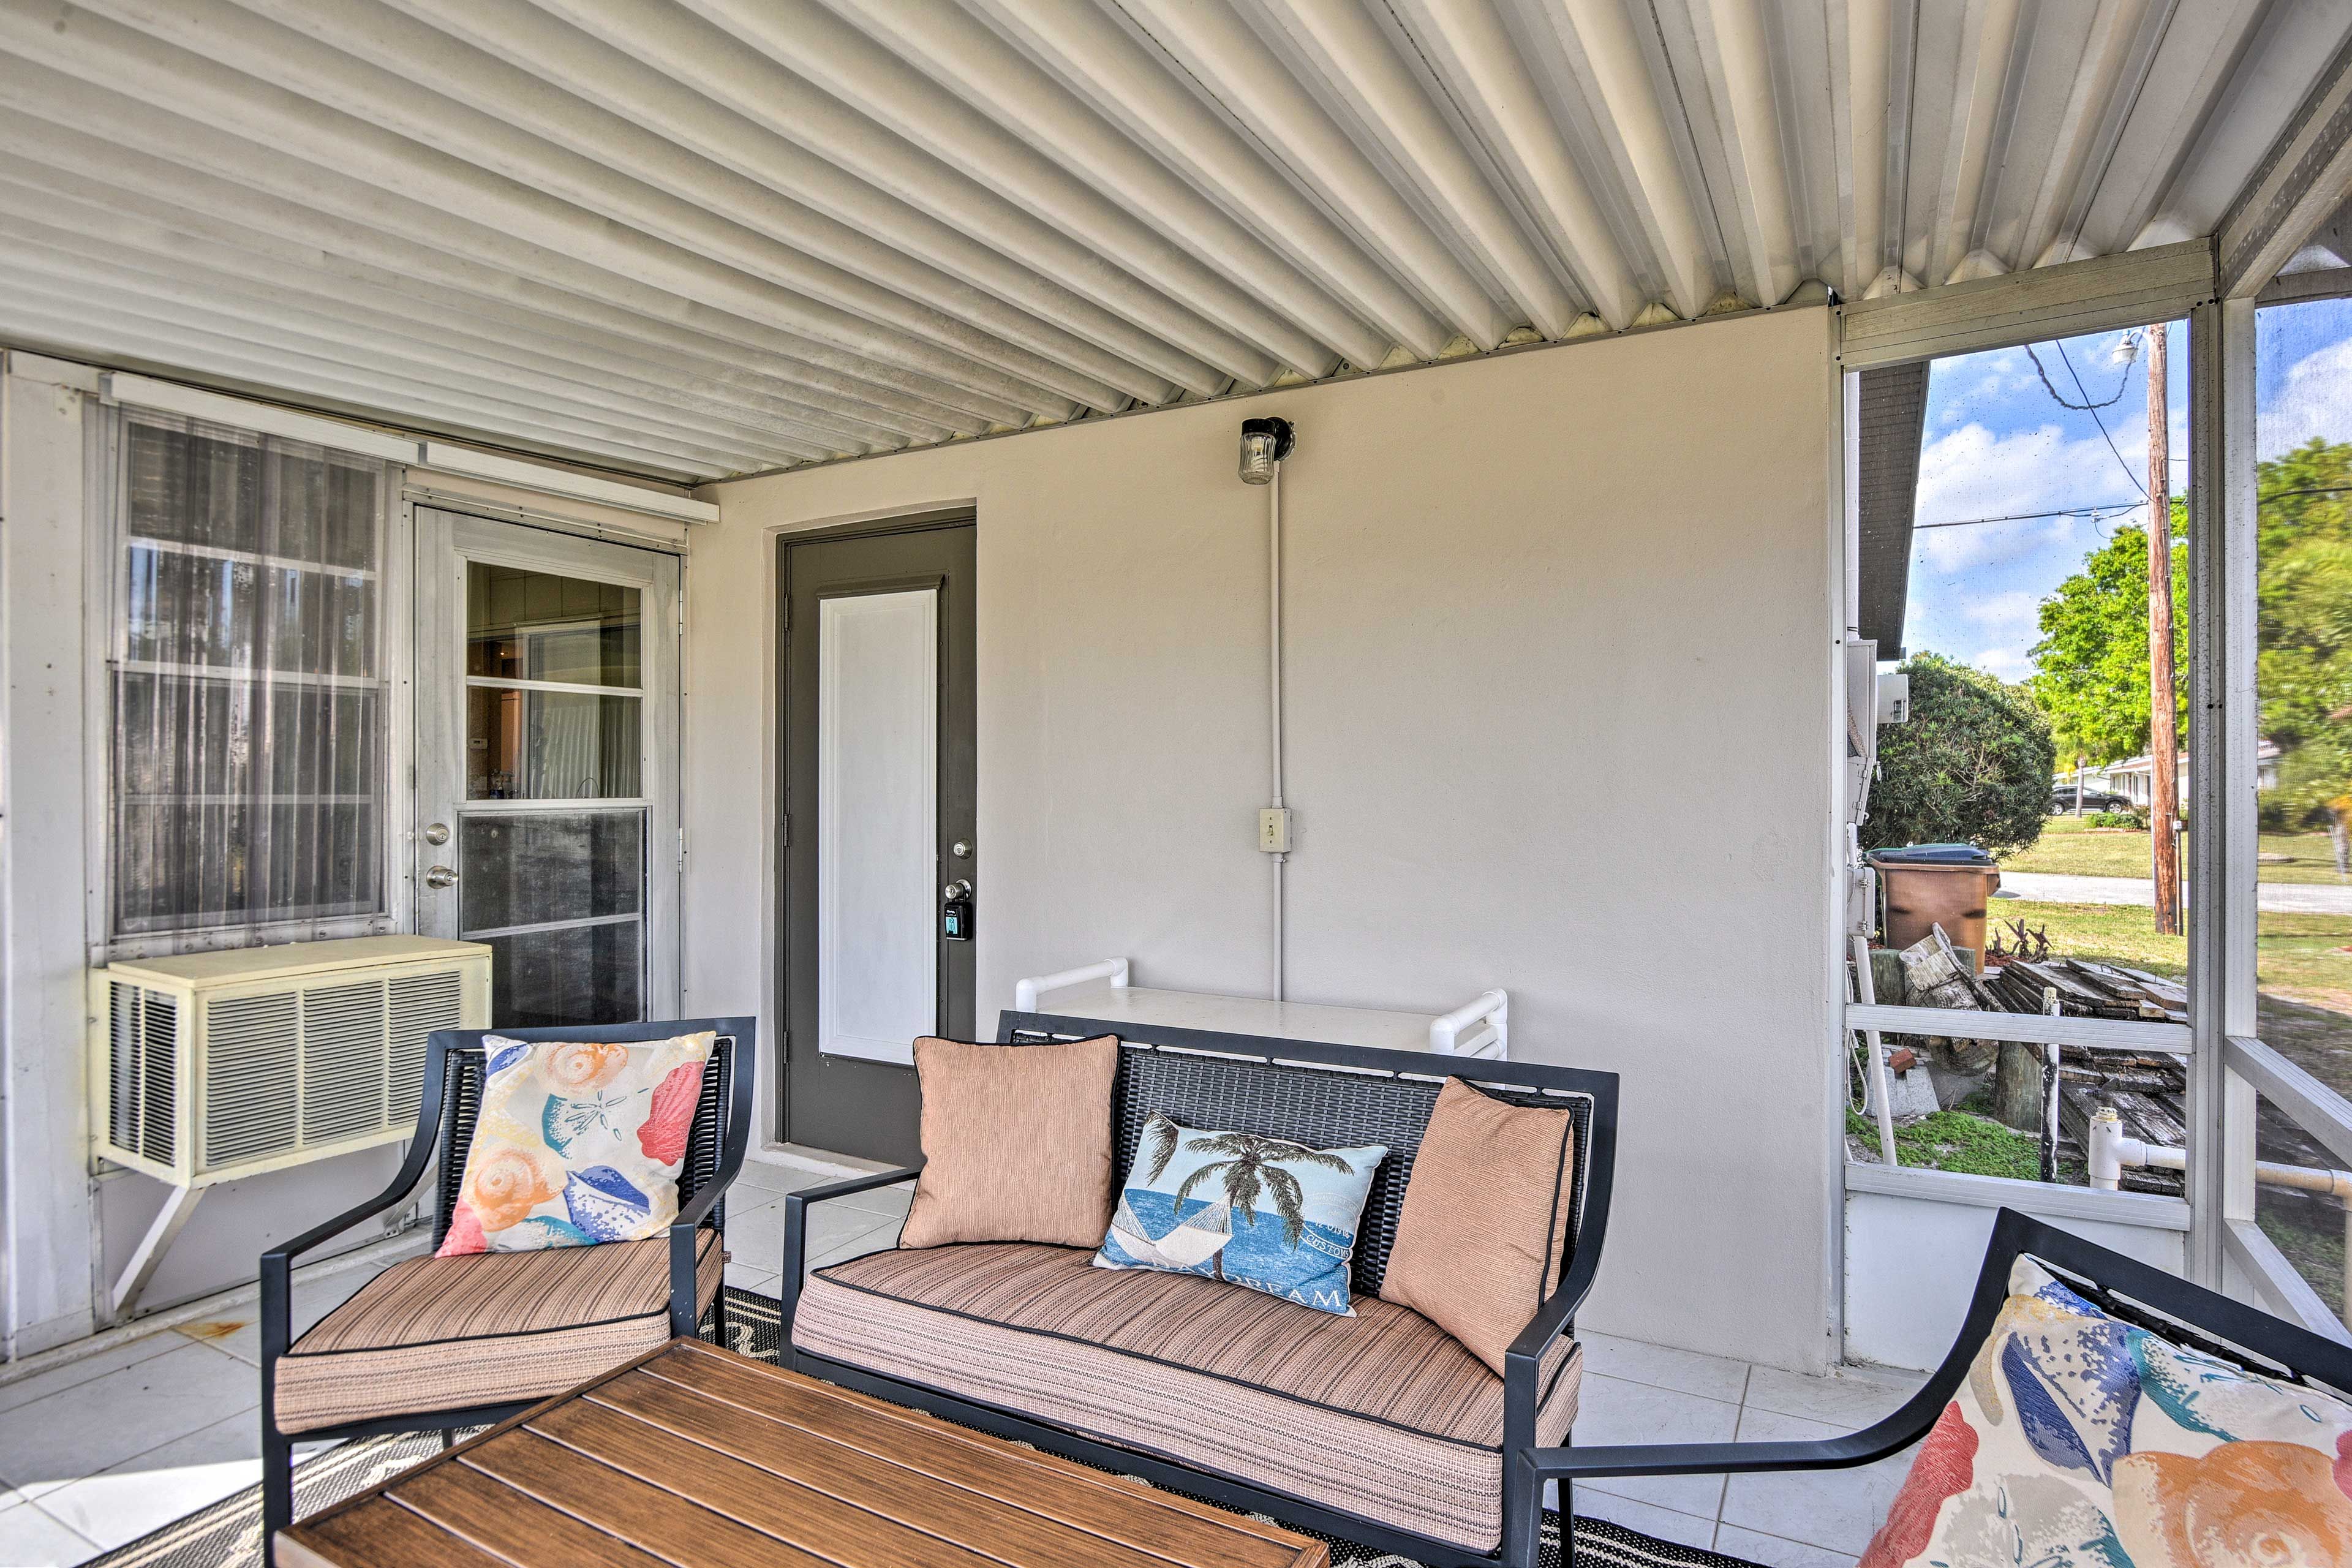 The enclosed porch is the perfect place to enjoy your morning cup of joe!